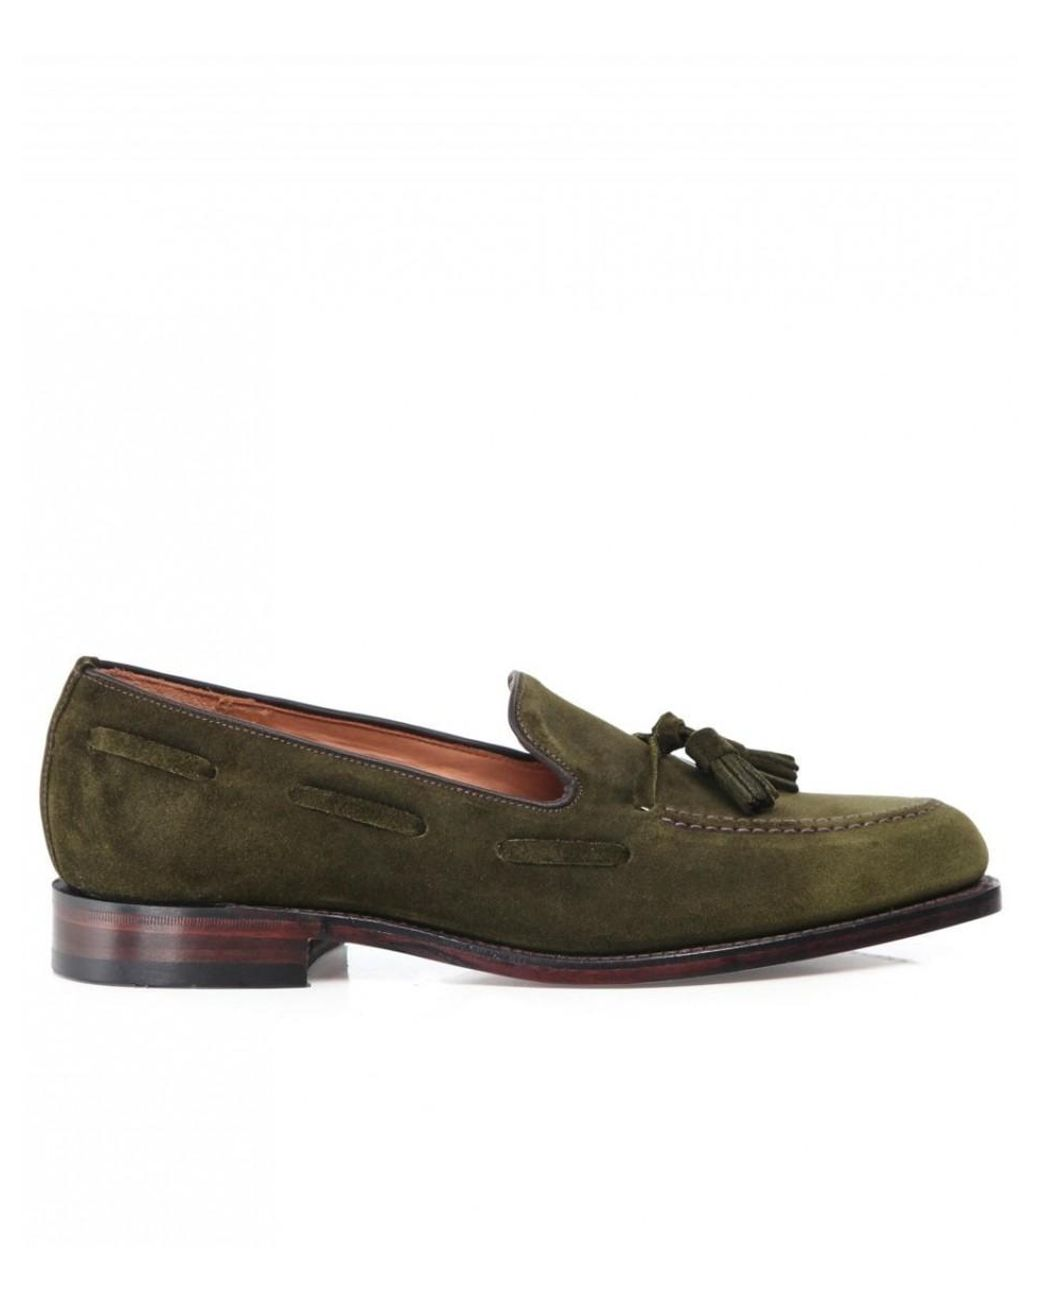 5a764b12 Lyst - Loake Suede Lincoln Tassel Loafers in Green for Men